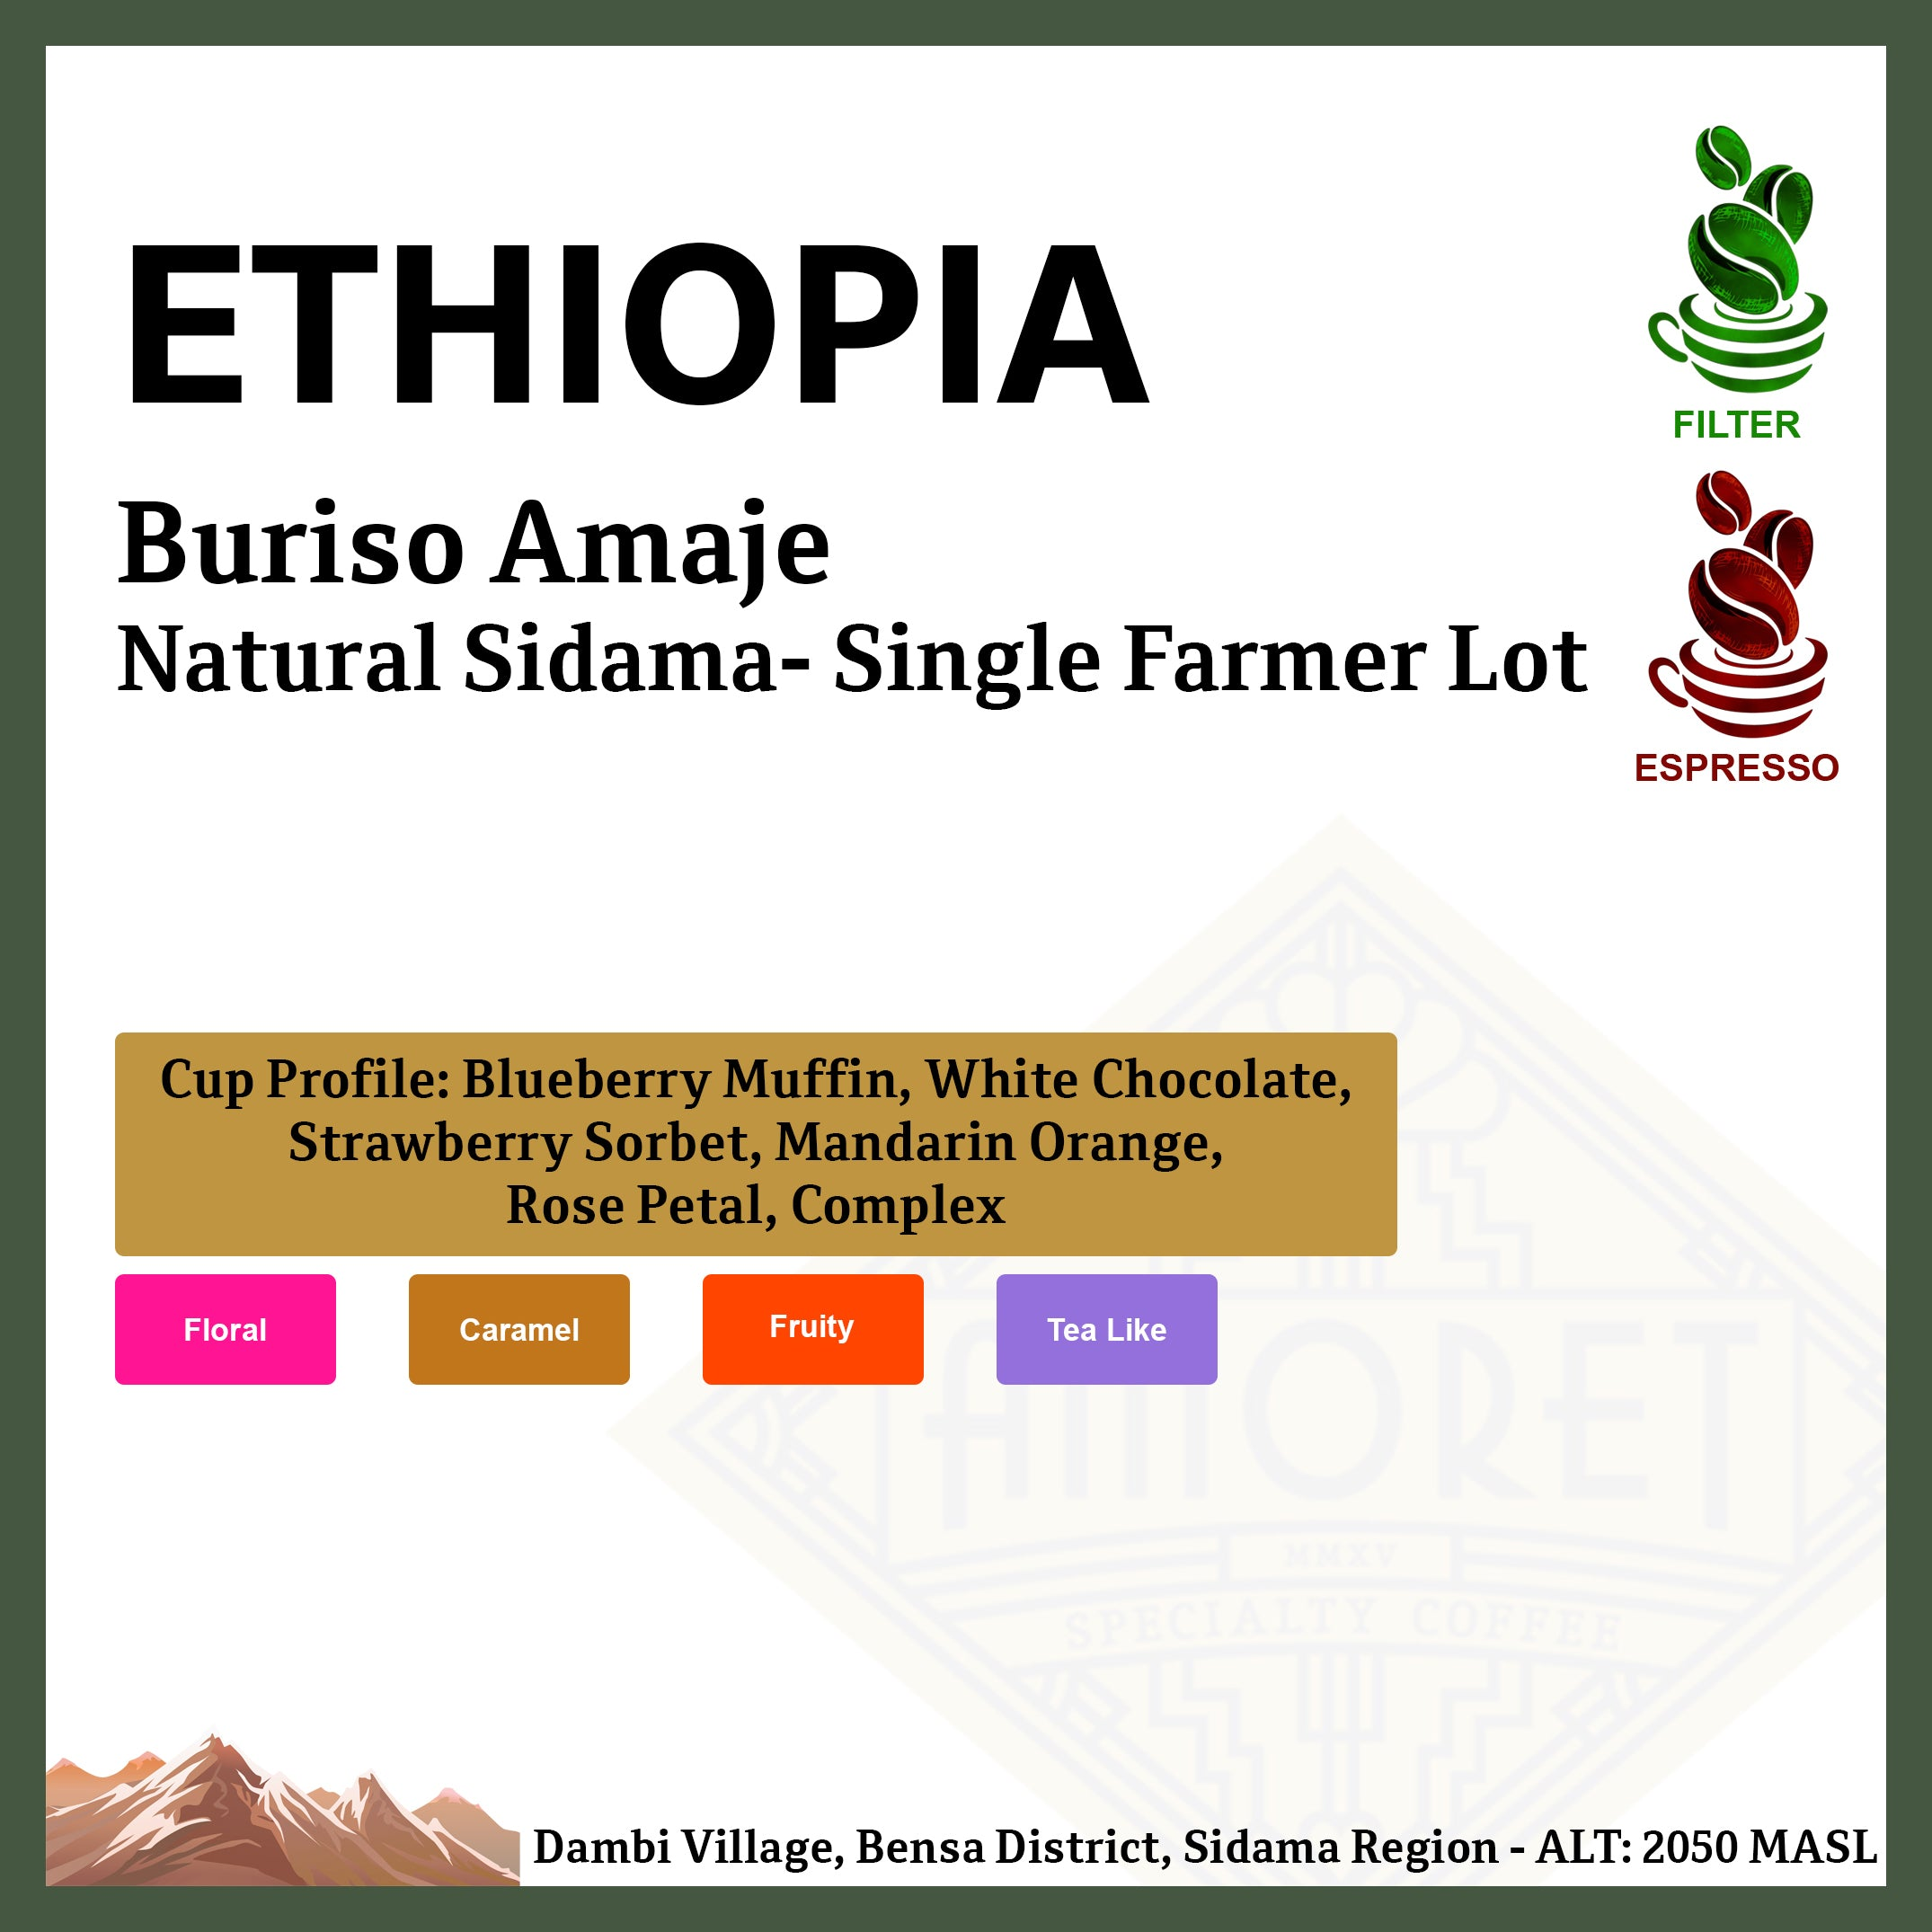 ETHIOPIA Buriso Amaje Natural Sidama - Single Farmer Lot